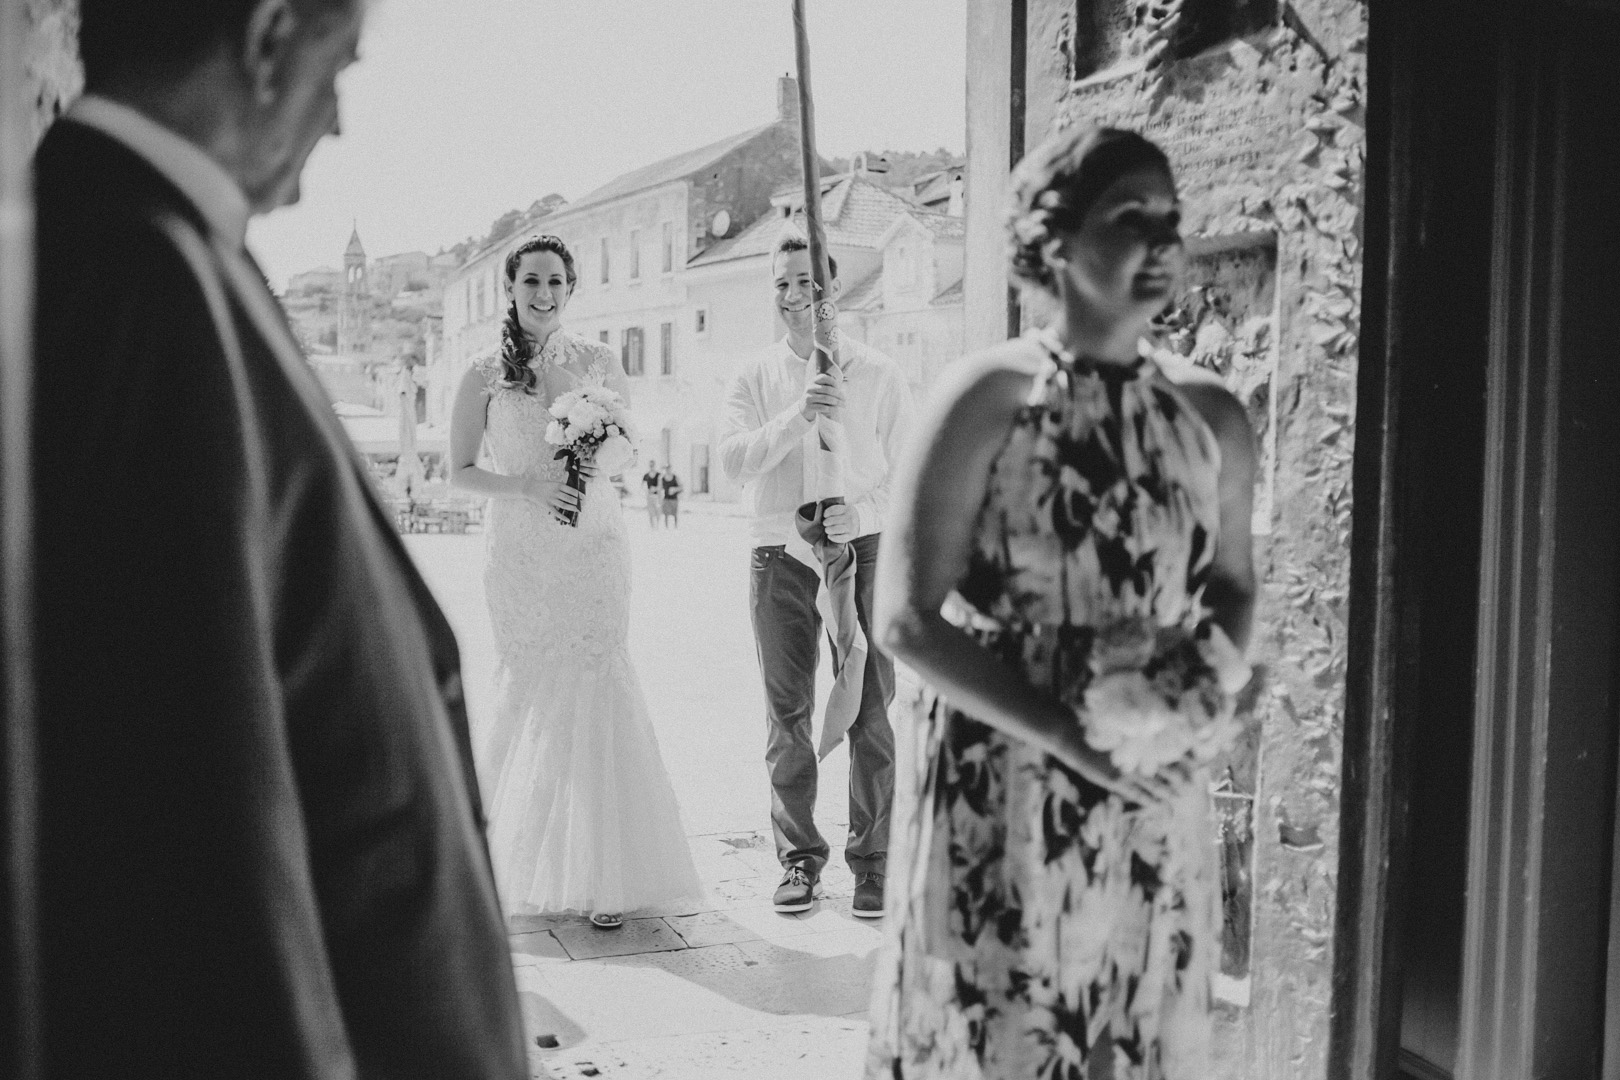 Bride getting ready to enter the St. Stephen's church on Hvar island